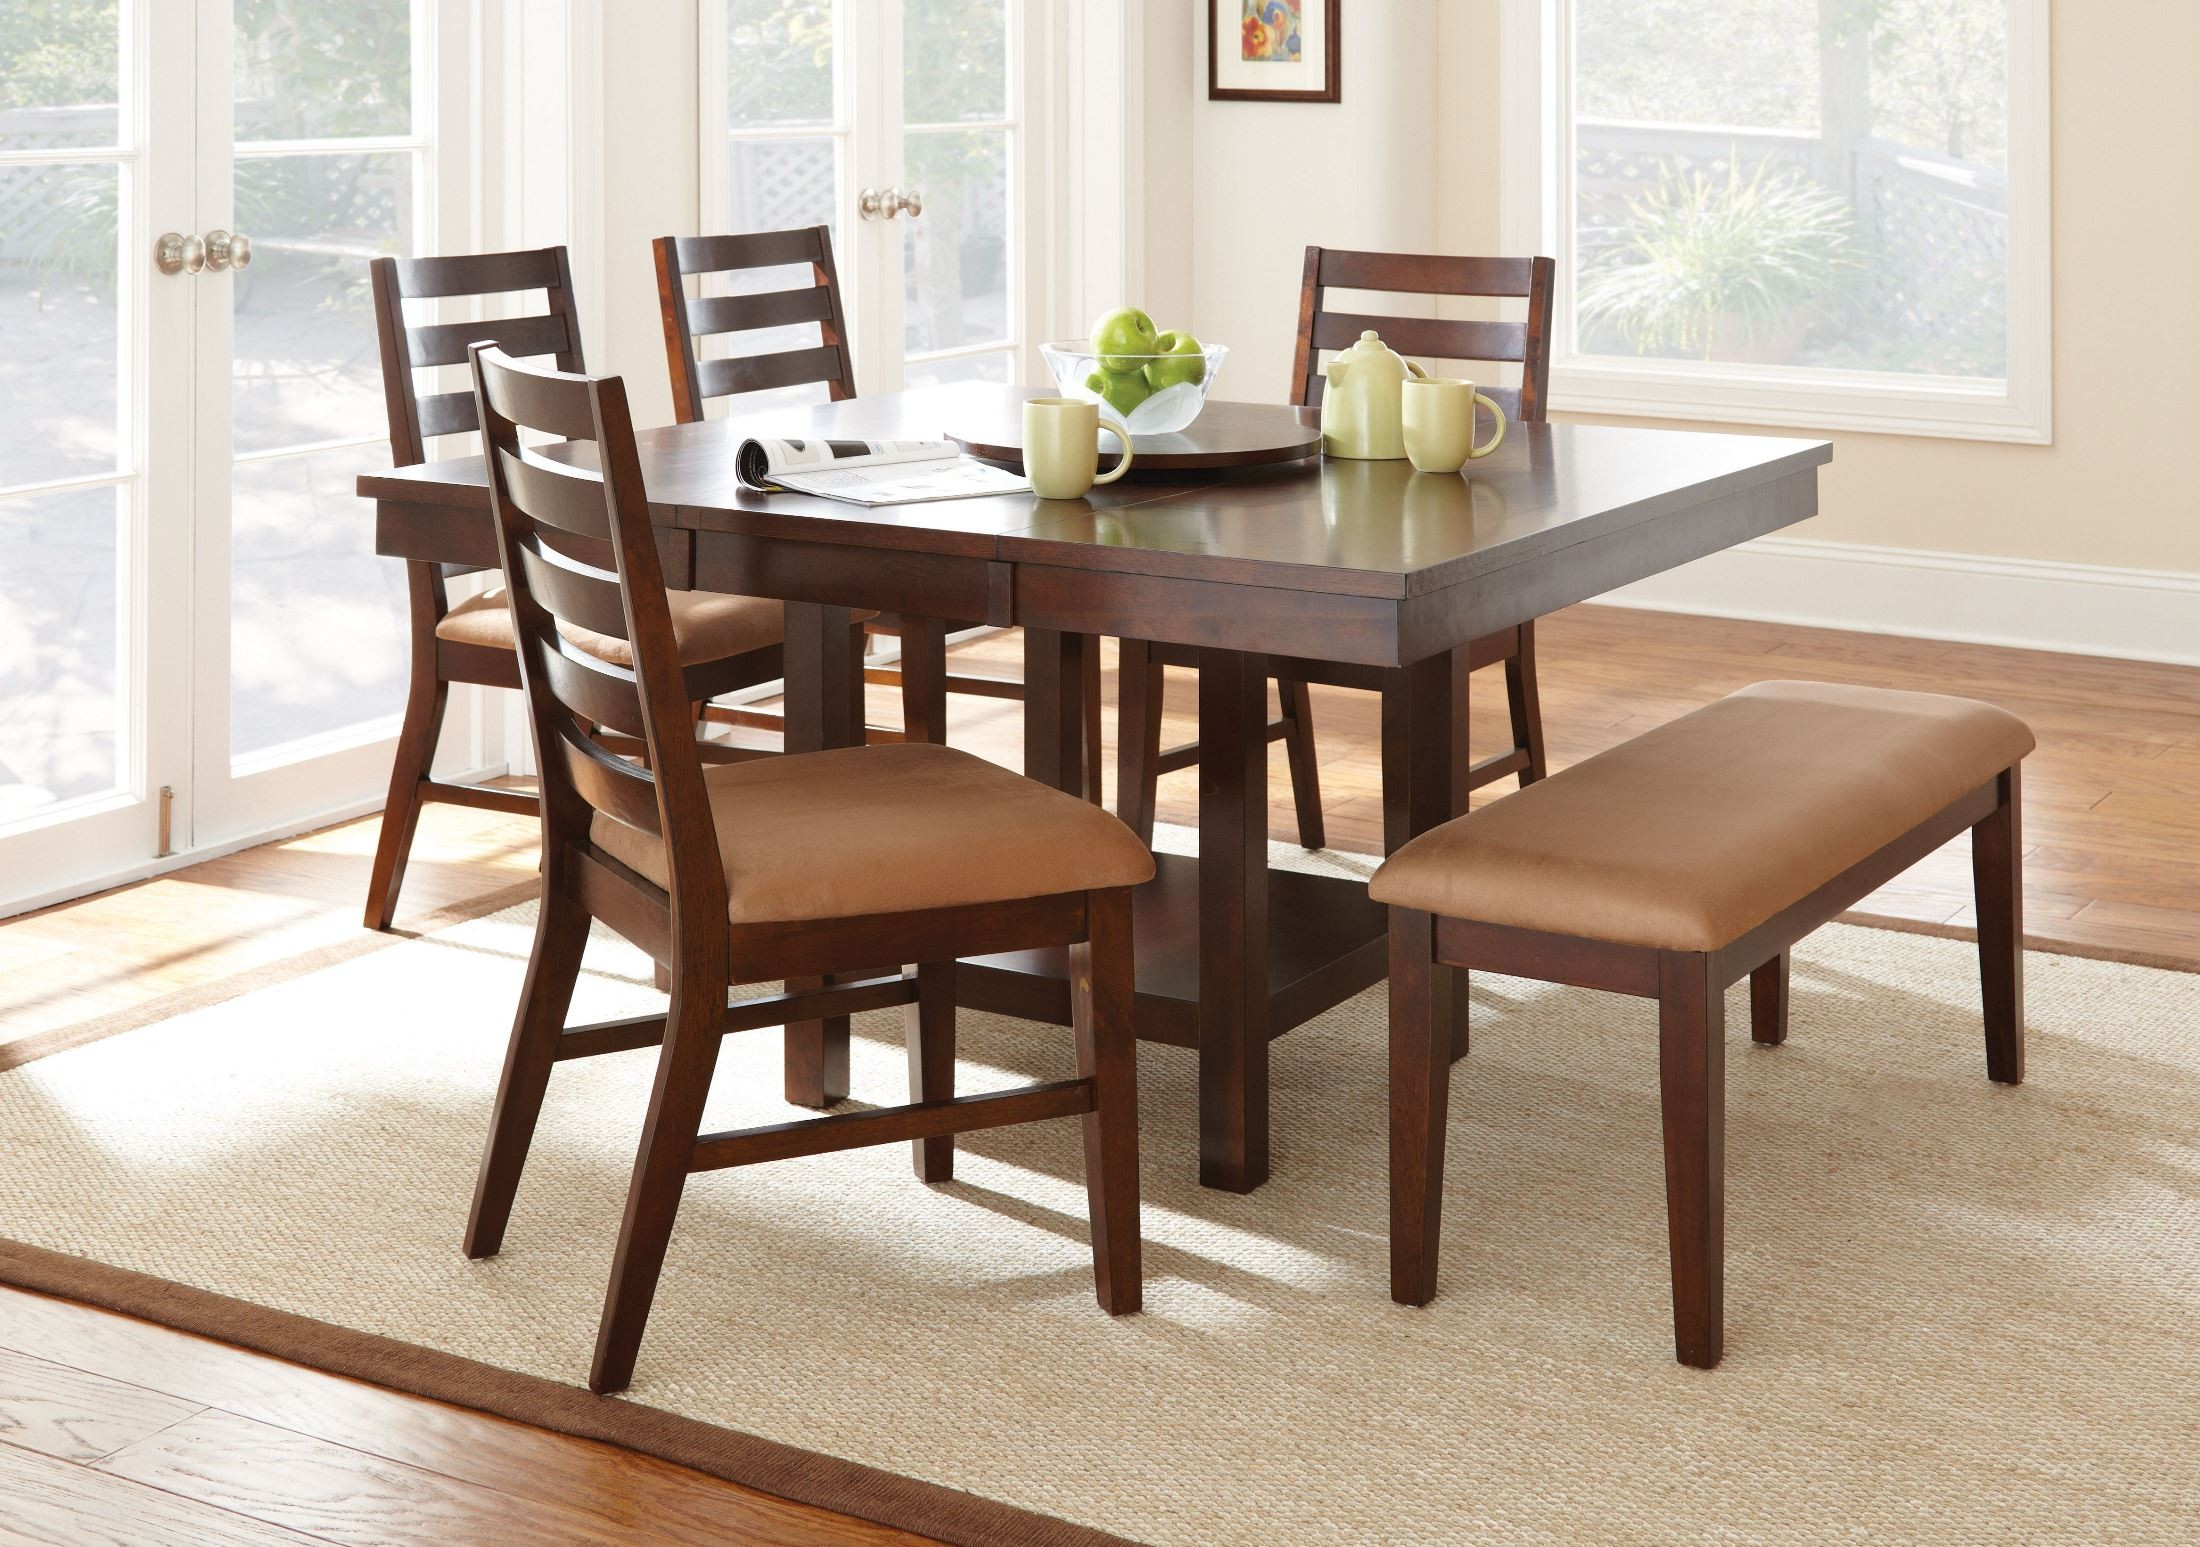 Eden Light Cherry Extendable Square Dining Room Set ED400T Steve Silver